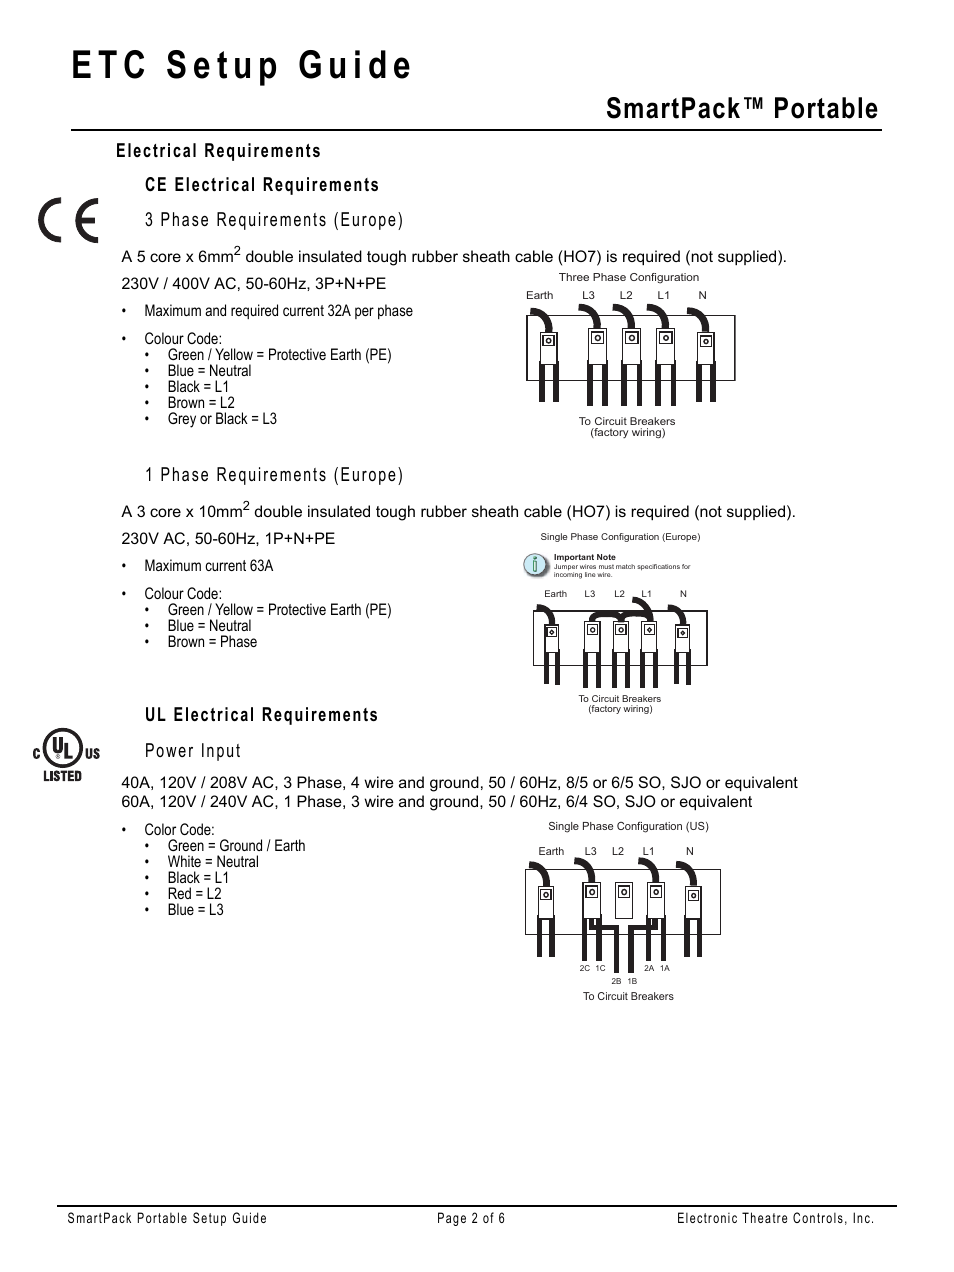 Electrical requirements, Ce electrical requirements, 3 phase ...